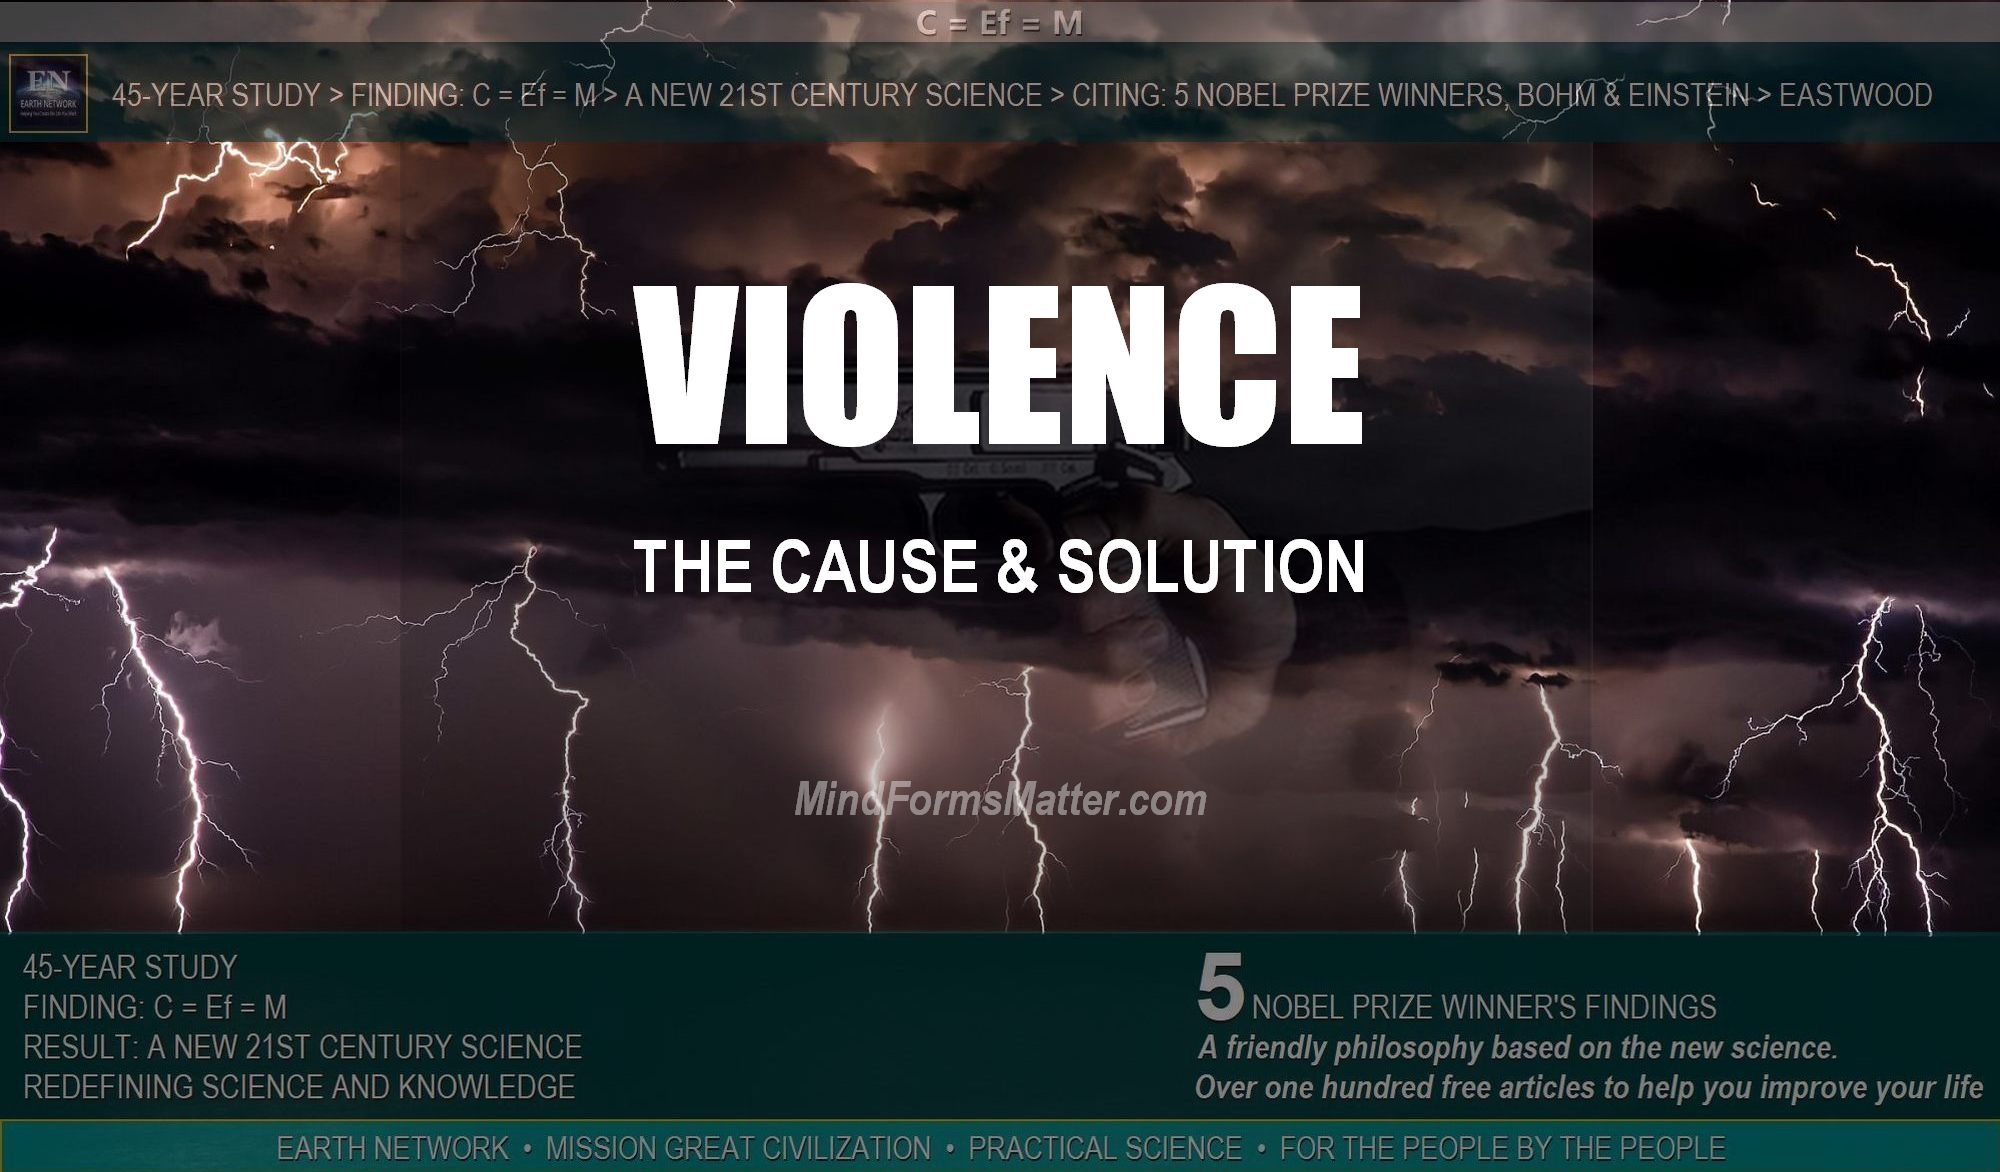 A gun depicts the cause and problem of gun violence. Lightening depicts the solution to mass shootings and violence.